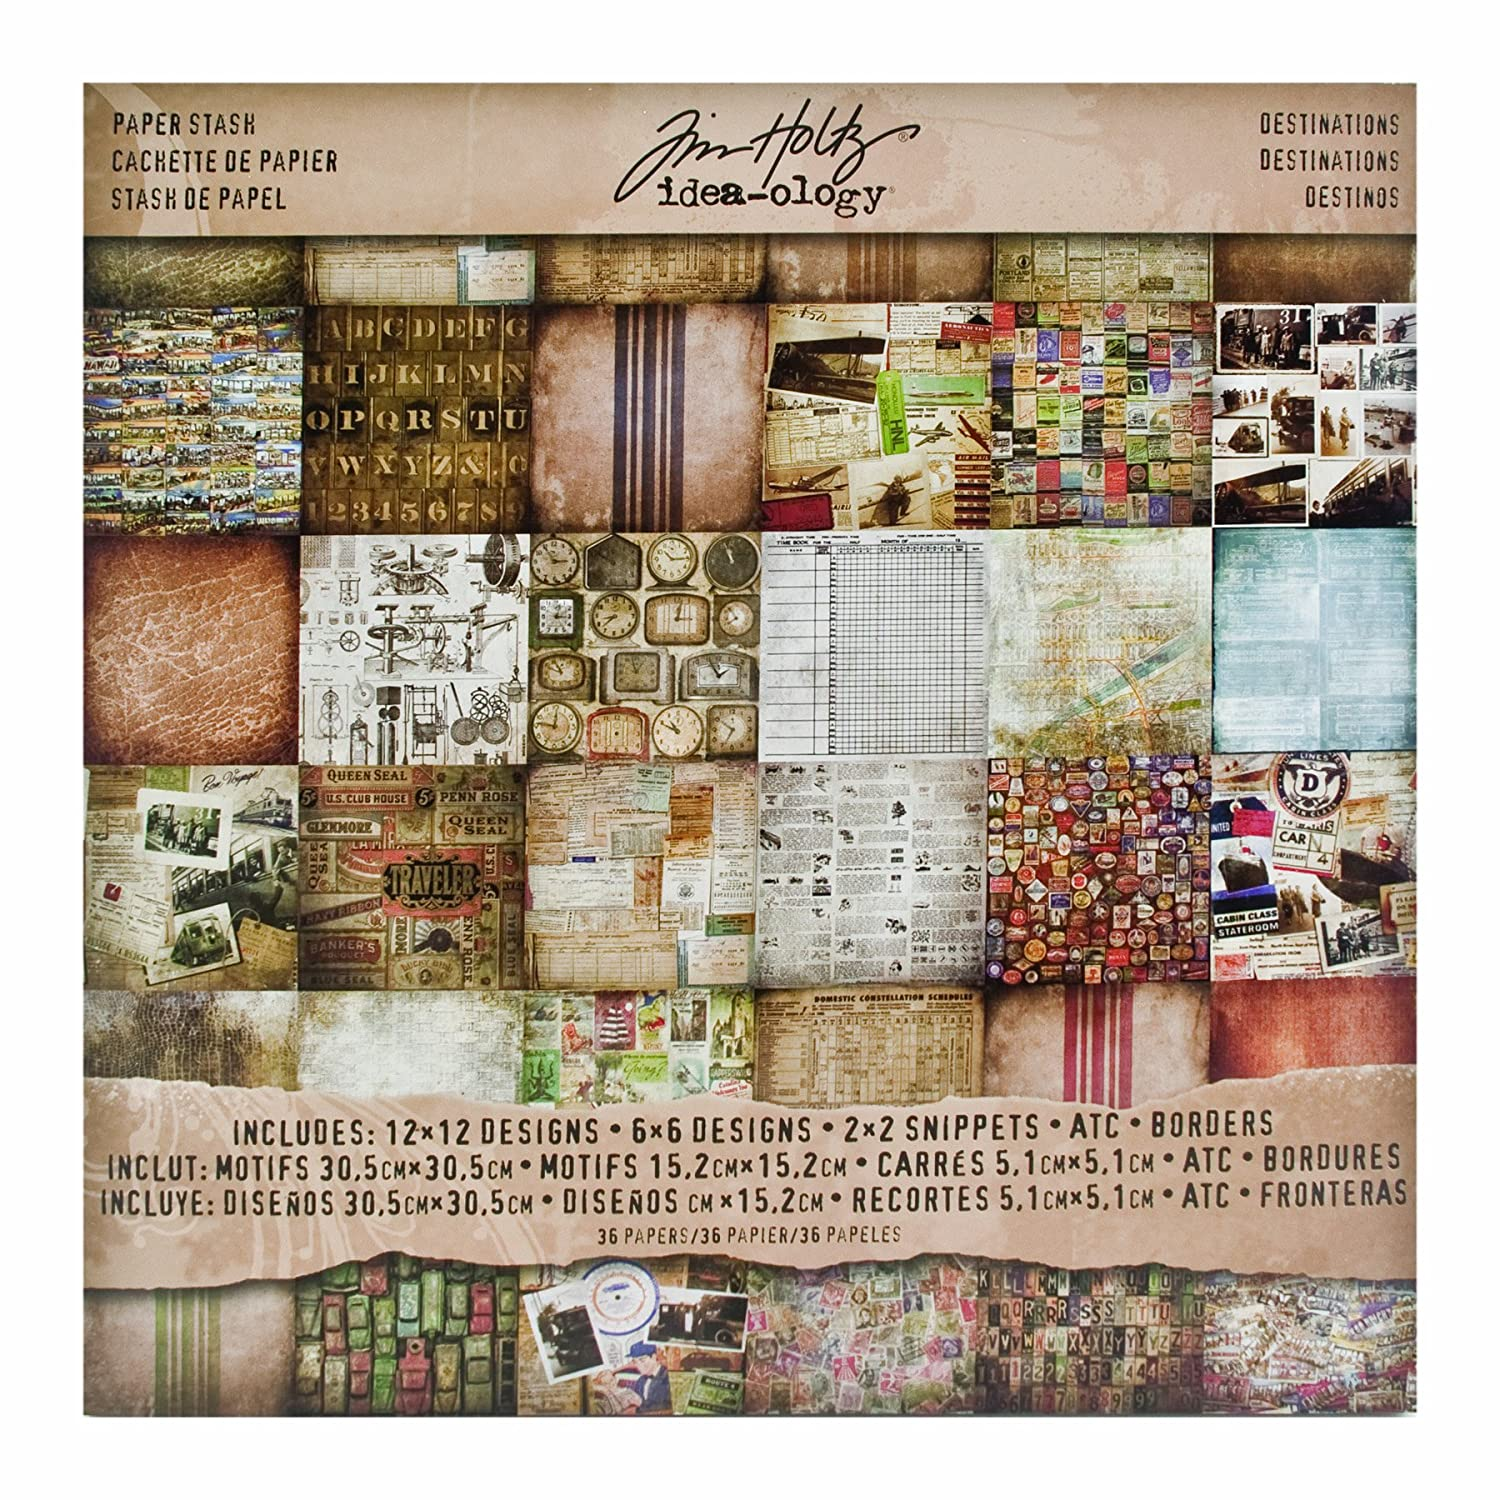 Multi colored cardstock paper - Amazon Com Destinations Paper Stash By Tim Holtz Idea Ology 36 Sheets Double Sided Card Stock Various Sizes Multicolored Th93004 Arts